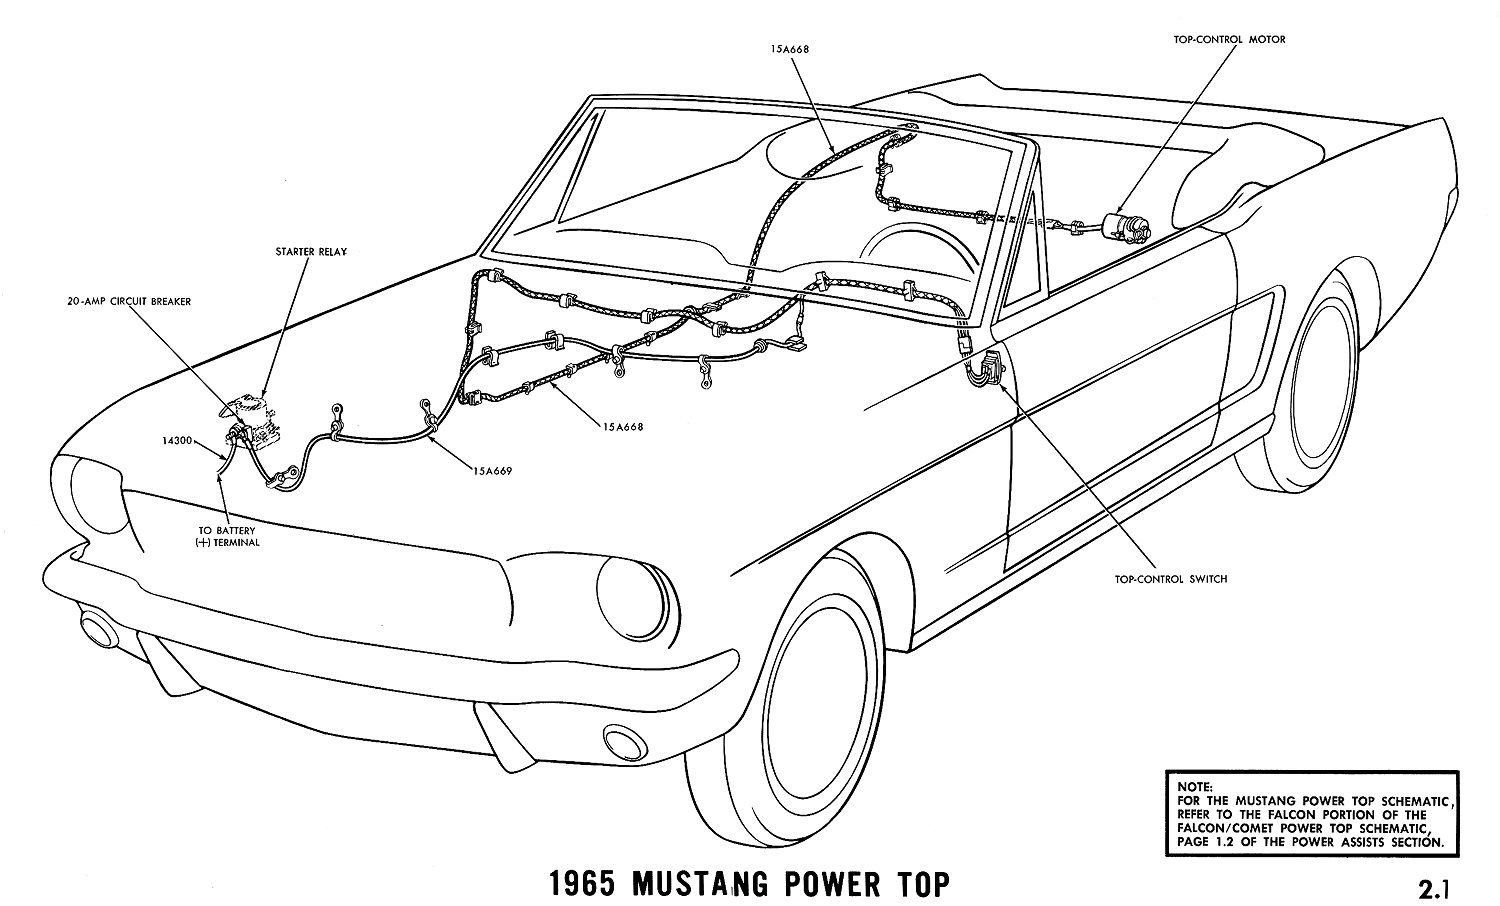 exterior light turn signals and horns wiring diagrams of 1966